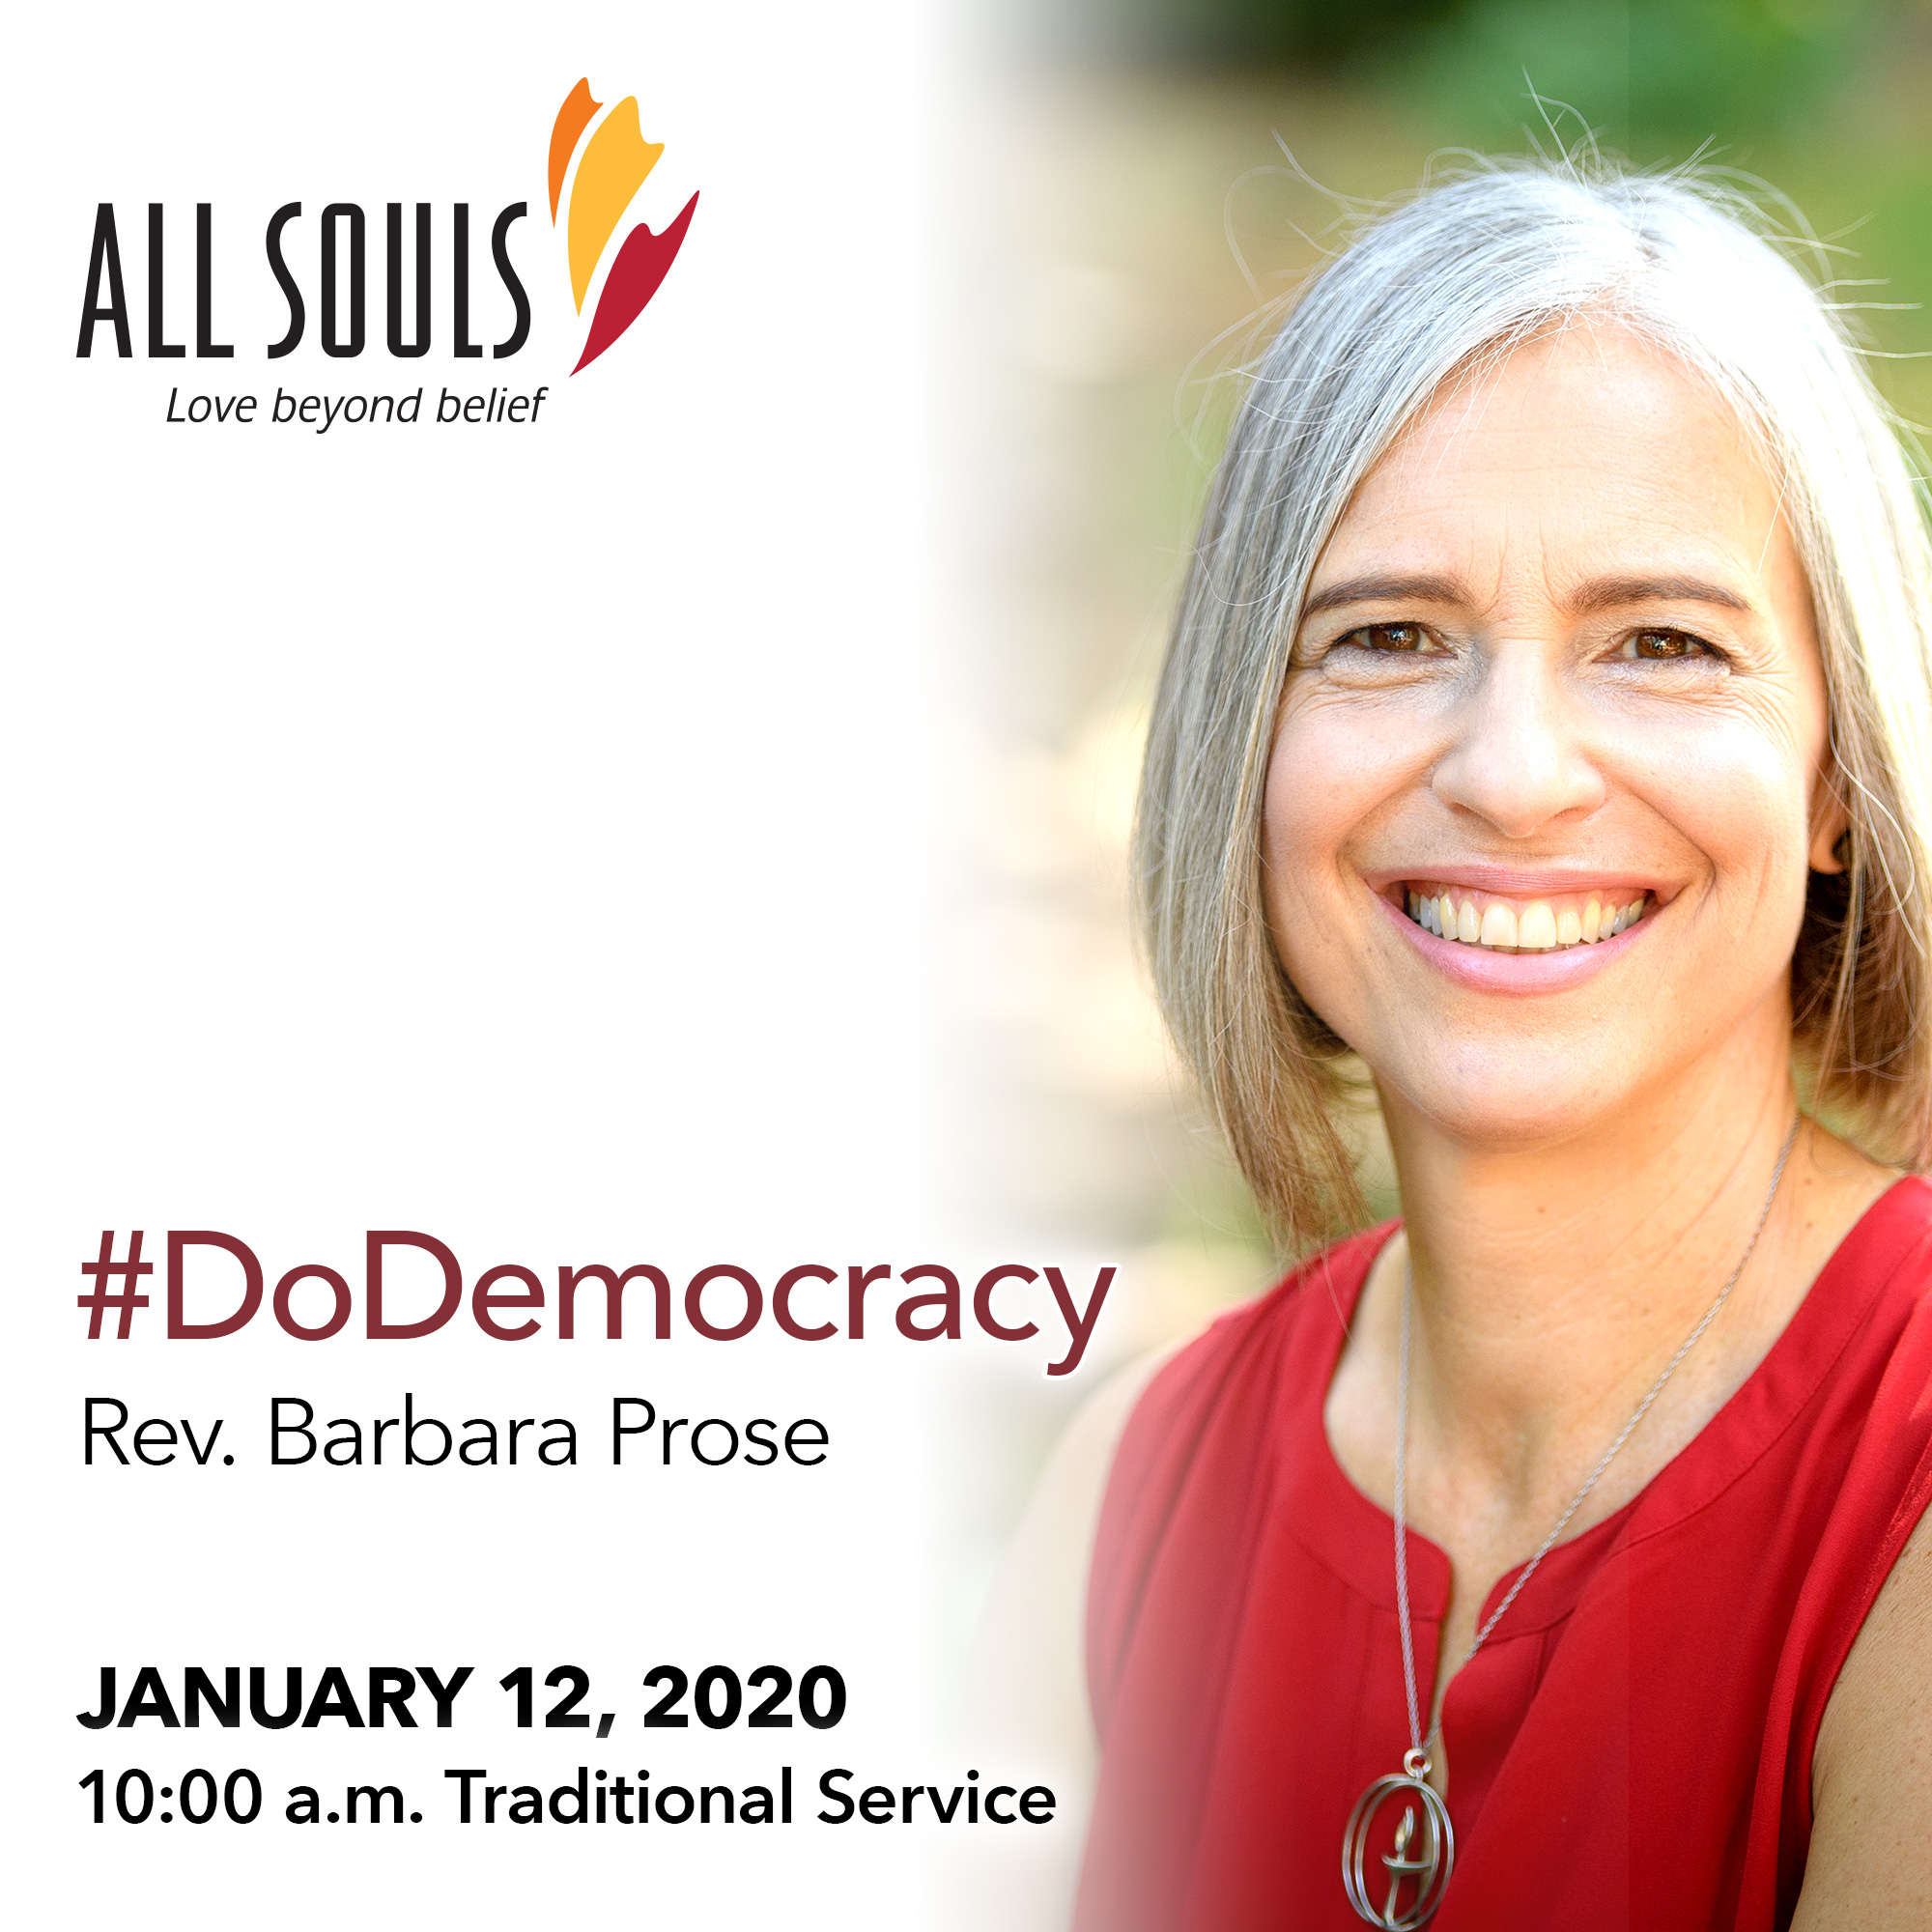 '#DoDemocracy' - A sermon by Rev. Barbara Prose (Traditional Service) show art